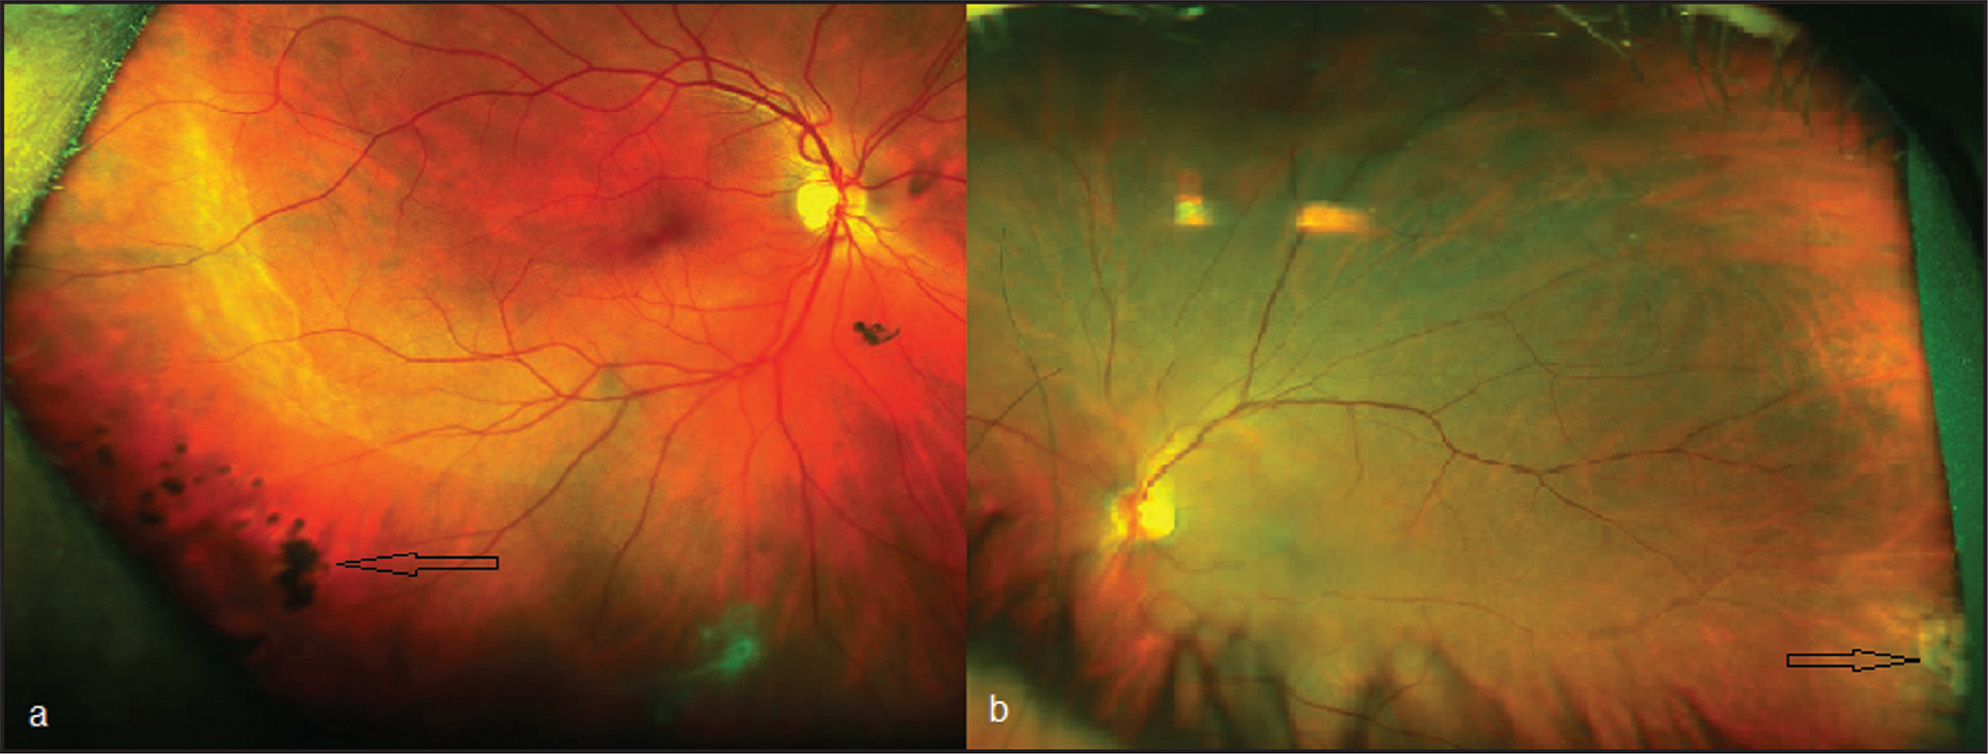 UWF retinal color imaging (Optos 200Tx) demonstrating peripheral lesions using the zooming function of the imaging system. (A) Patient 65 (right eye), a 57-year-old man with a history of retinal tear treated with retinopexy. The Optos image was taken 29 days after uneventful cataract extraction surgery. Note the laser scars (black arrow). No new retinal breaks or detachment were found. (B) Patient 14 (left eye), a 69-year-old man. The Optos image was taken 8 days after uneventful cataract extraction surgery. Note chorioretinal atrophy at the temporal far periphery (black arrow). No new retinal breaks or detachment were found.